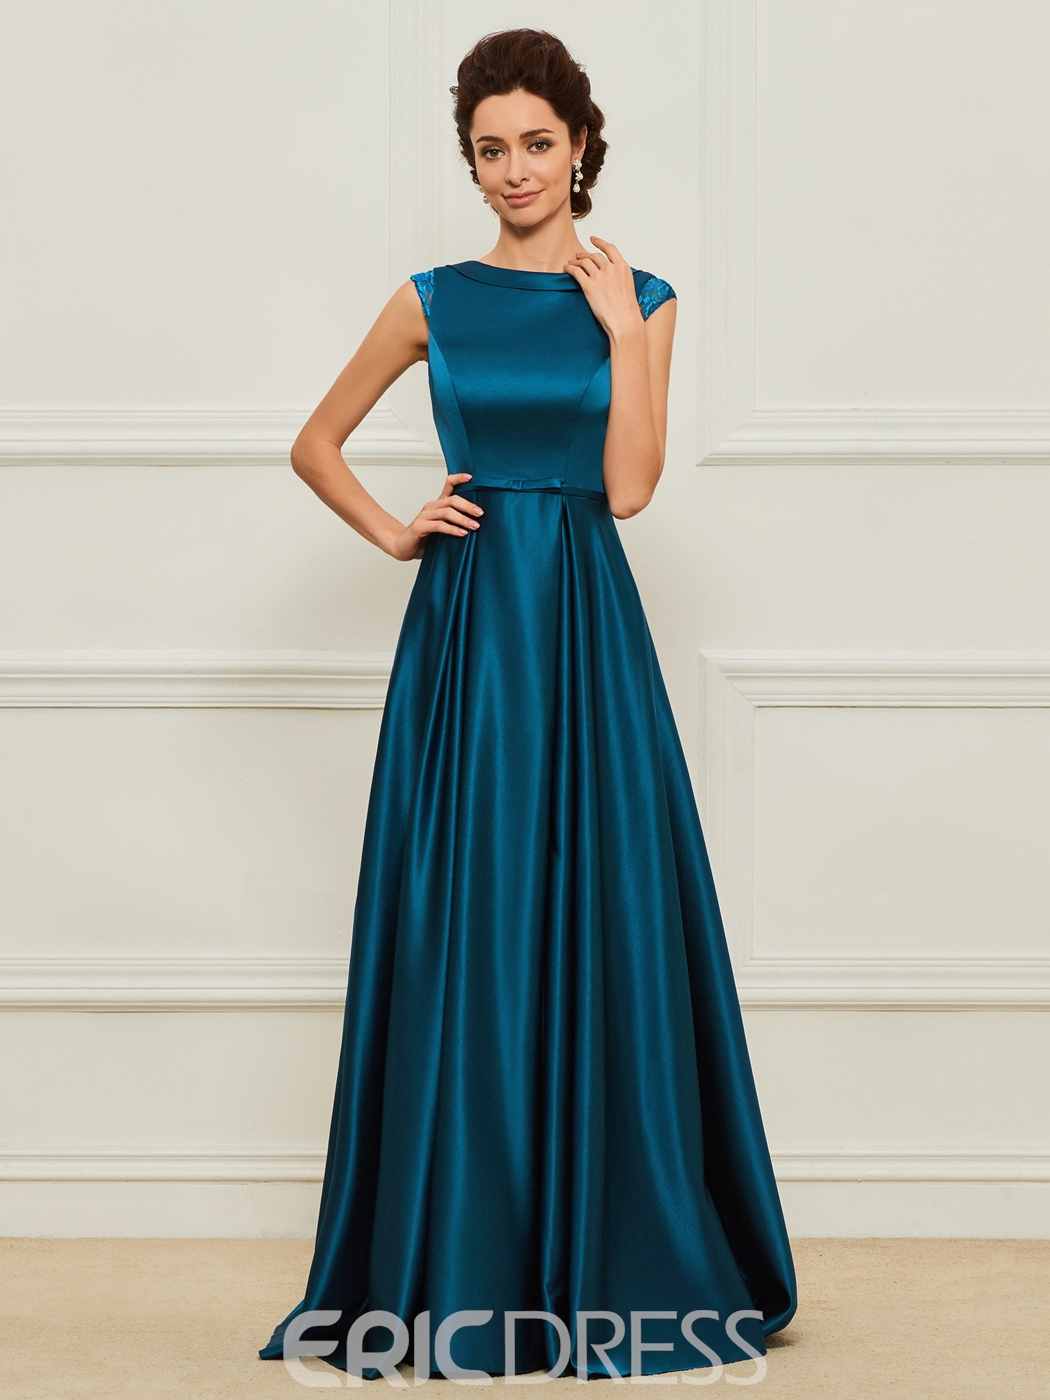 View Dress Detail: DQ-8260 | Evening gowns elegant, Prom